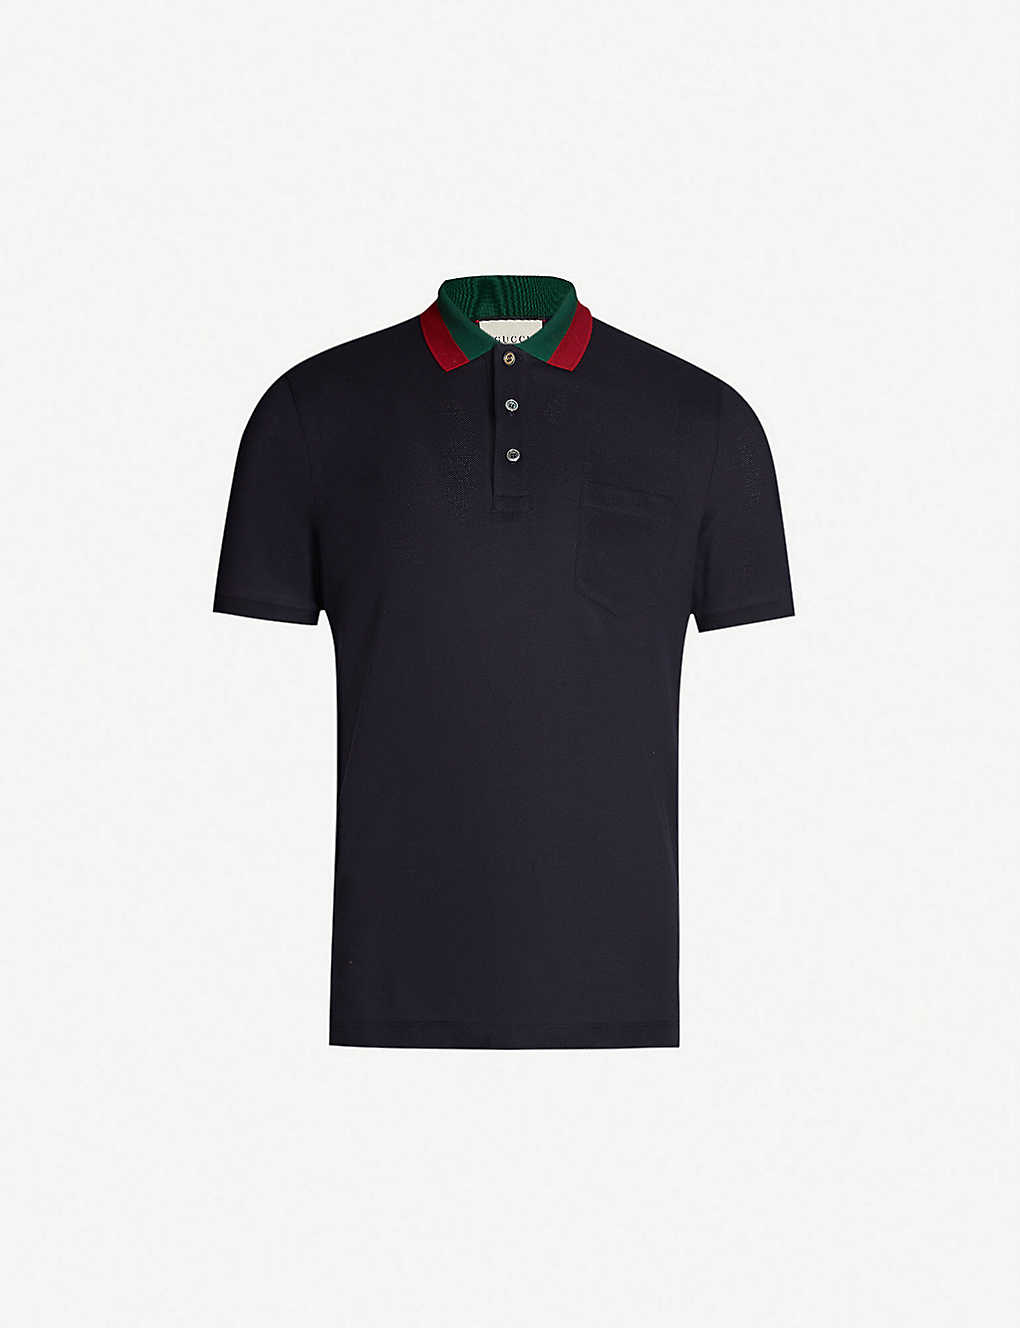 69c8ed6bf0b7 GUCCI - Striped collar stretch cotton-piqué polo shirt